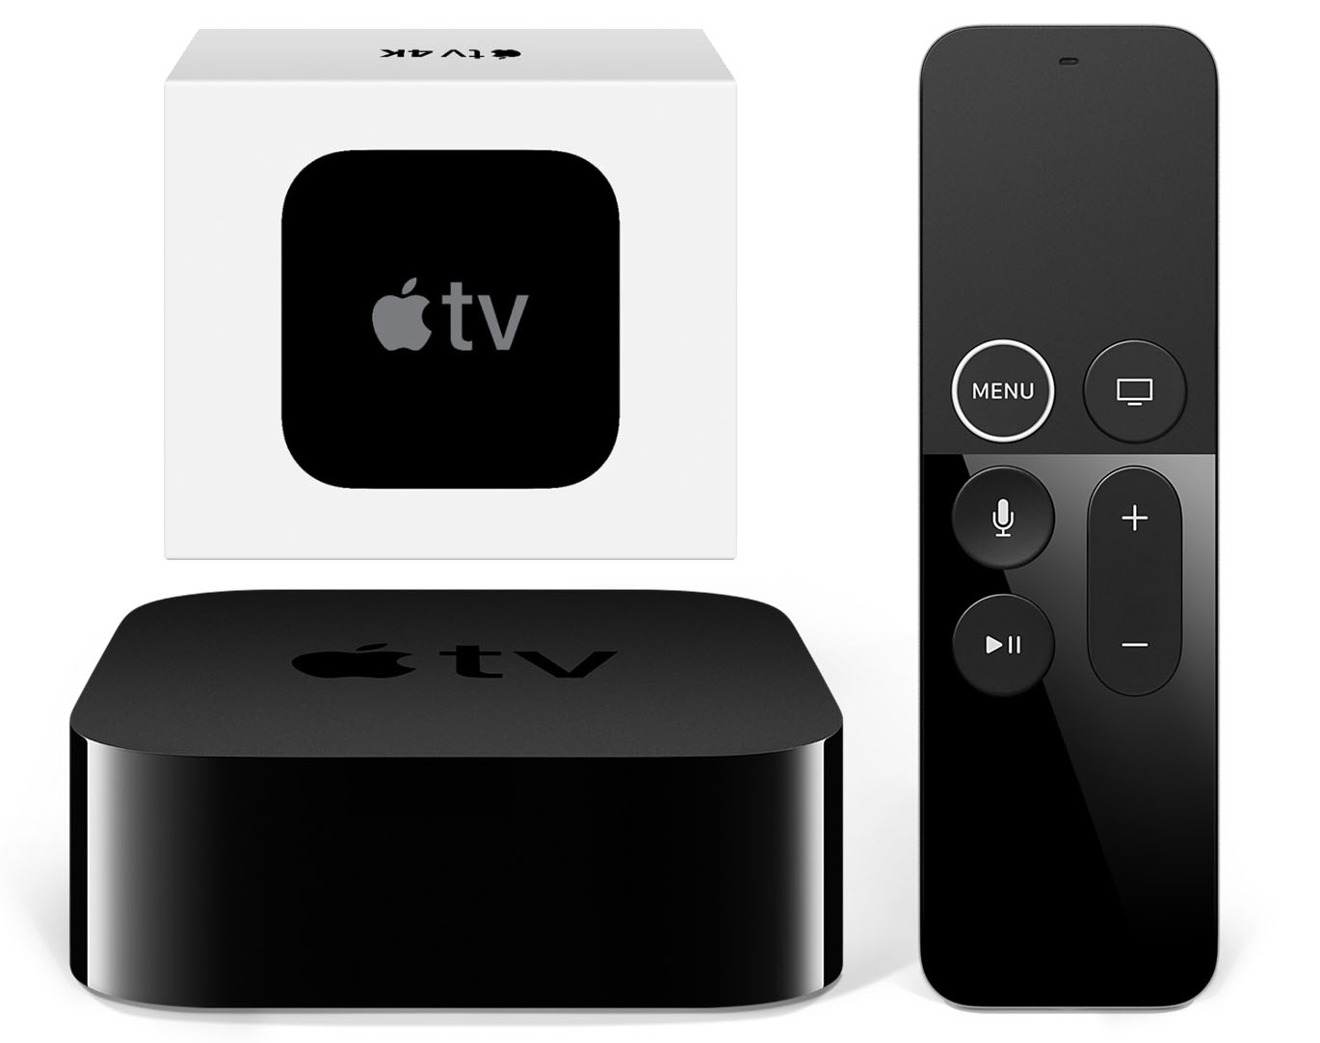 Apple TV 4K with Siri remote and box